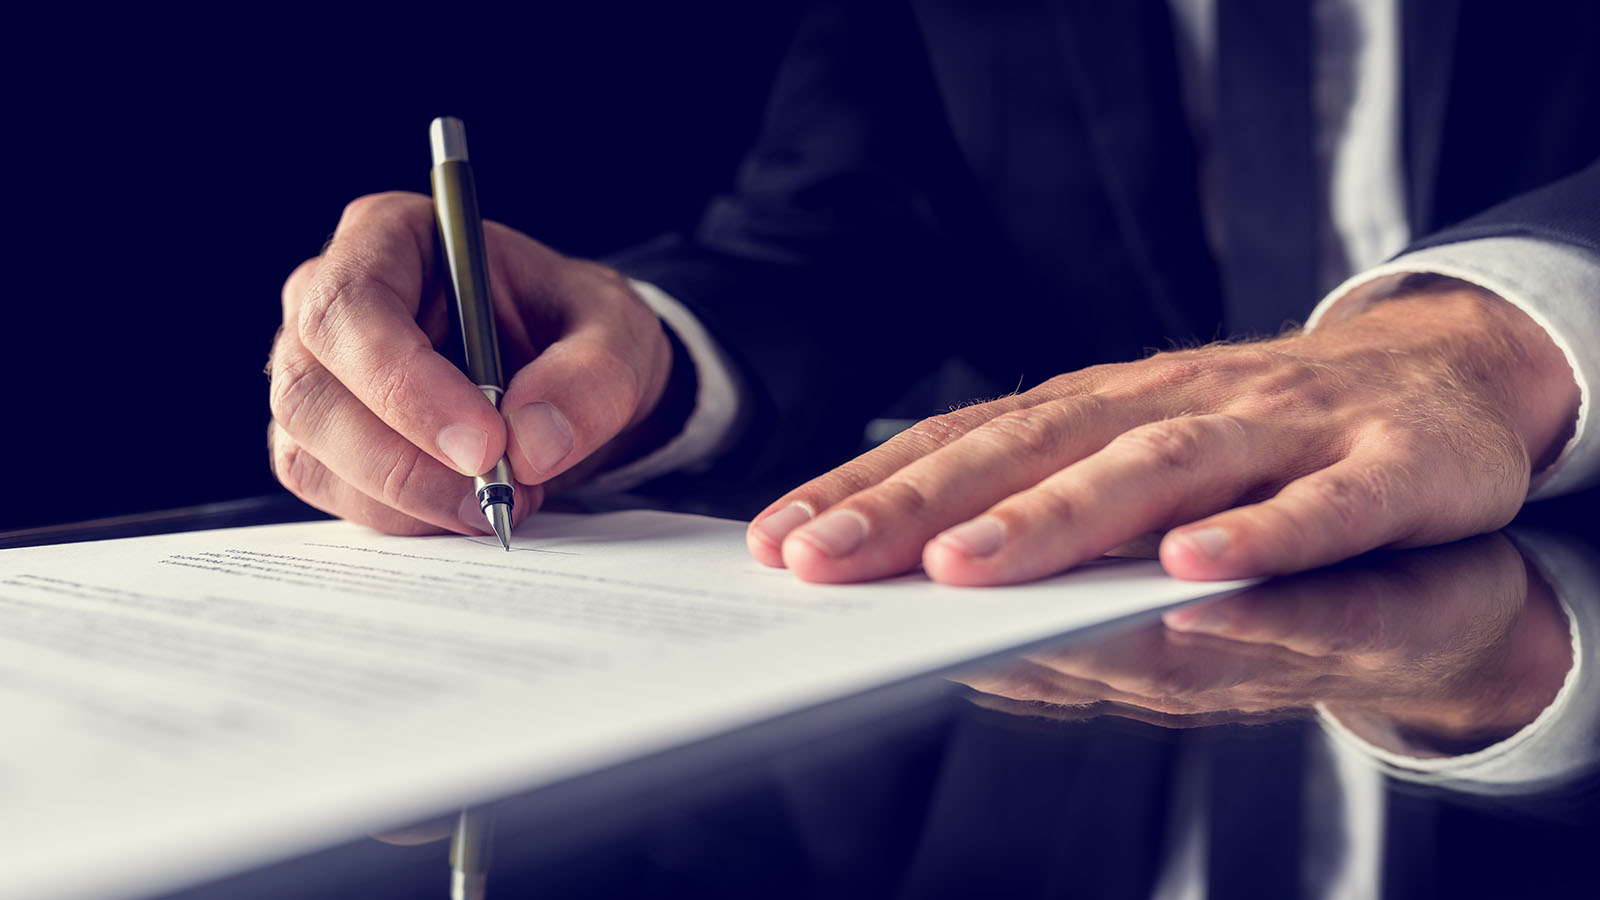 Crossing and dotting makes for clear contracts